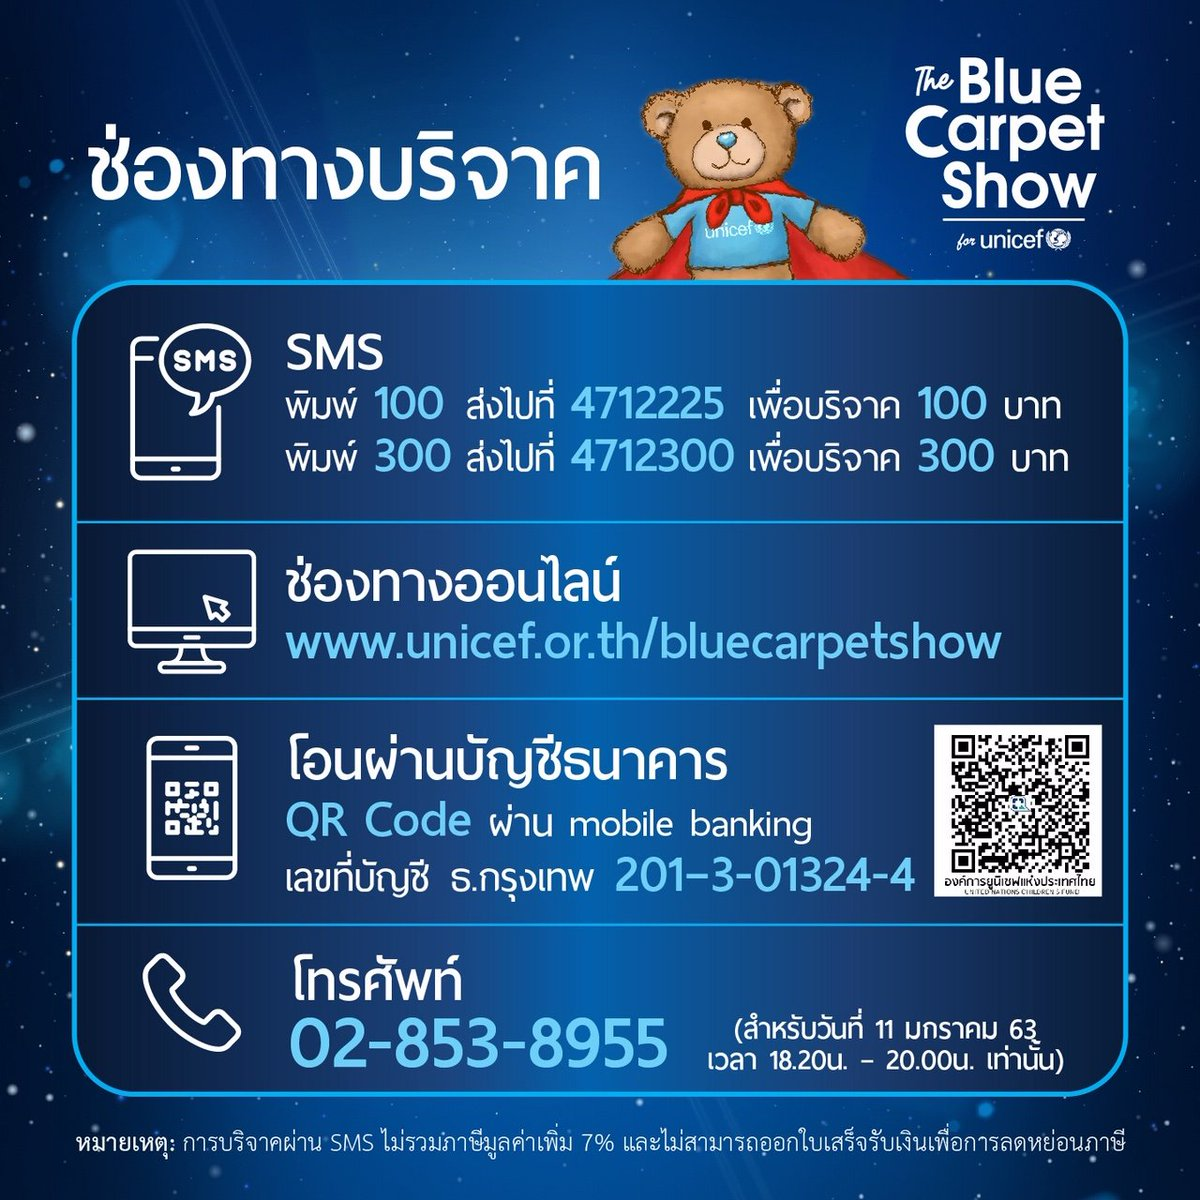 Bambam will be at The Blue Carpet Show, UNICEF and will be performing.  It's a fundraising event, donate if you  want to. This is for our future, The Children's  #TheBlueCarpetShowxBamBam #BamBamxUNICEF  #BamBam @GOT7Official @Bambam1a<br>http://pic.twitter.com/Helk4lEryv